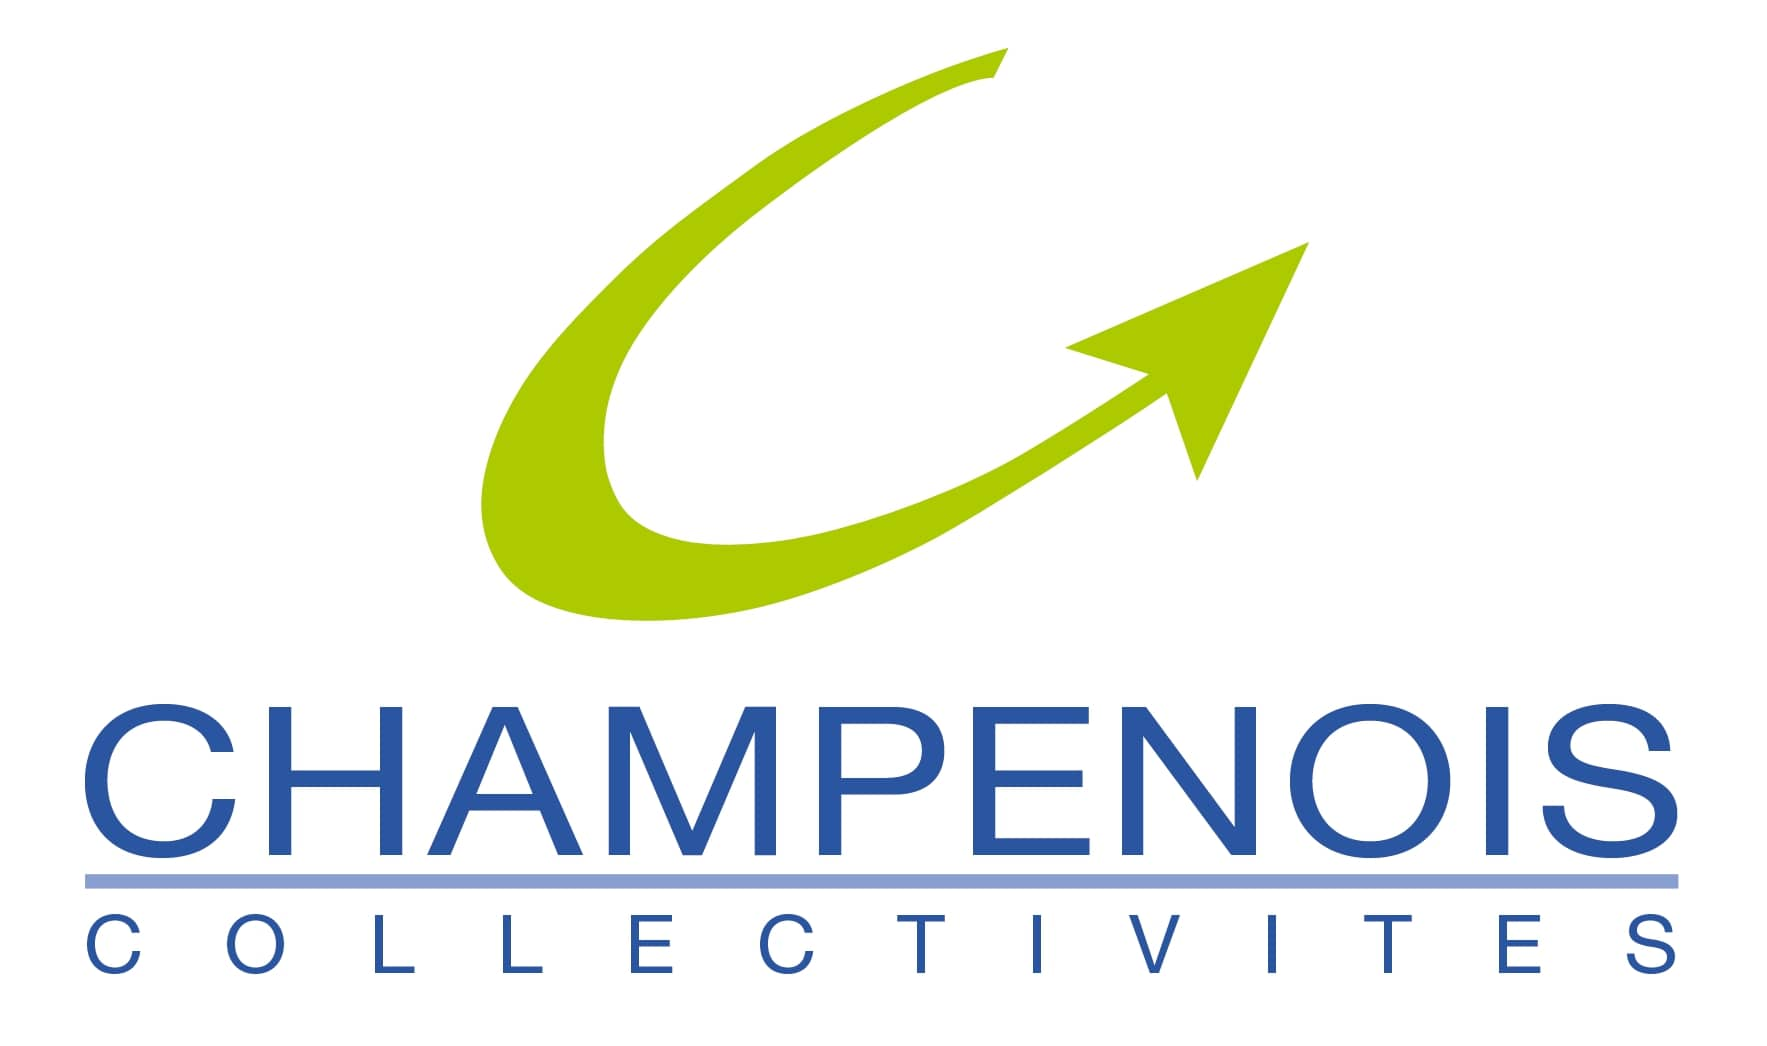 CHAMPENOIS COLLECTIVITE